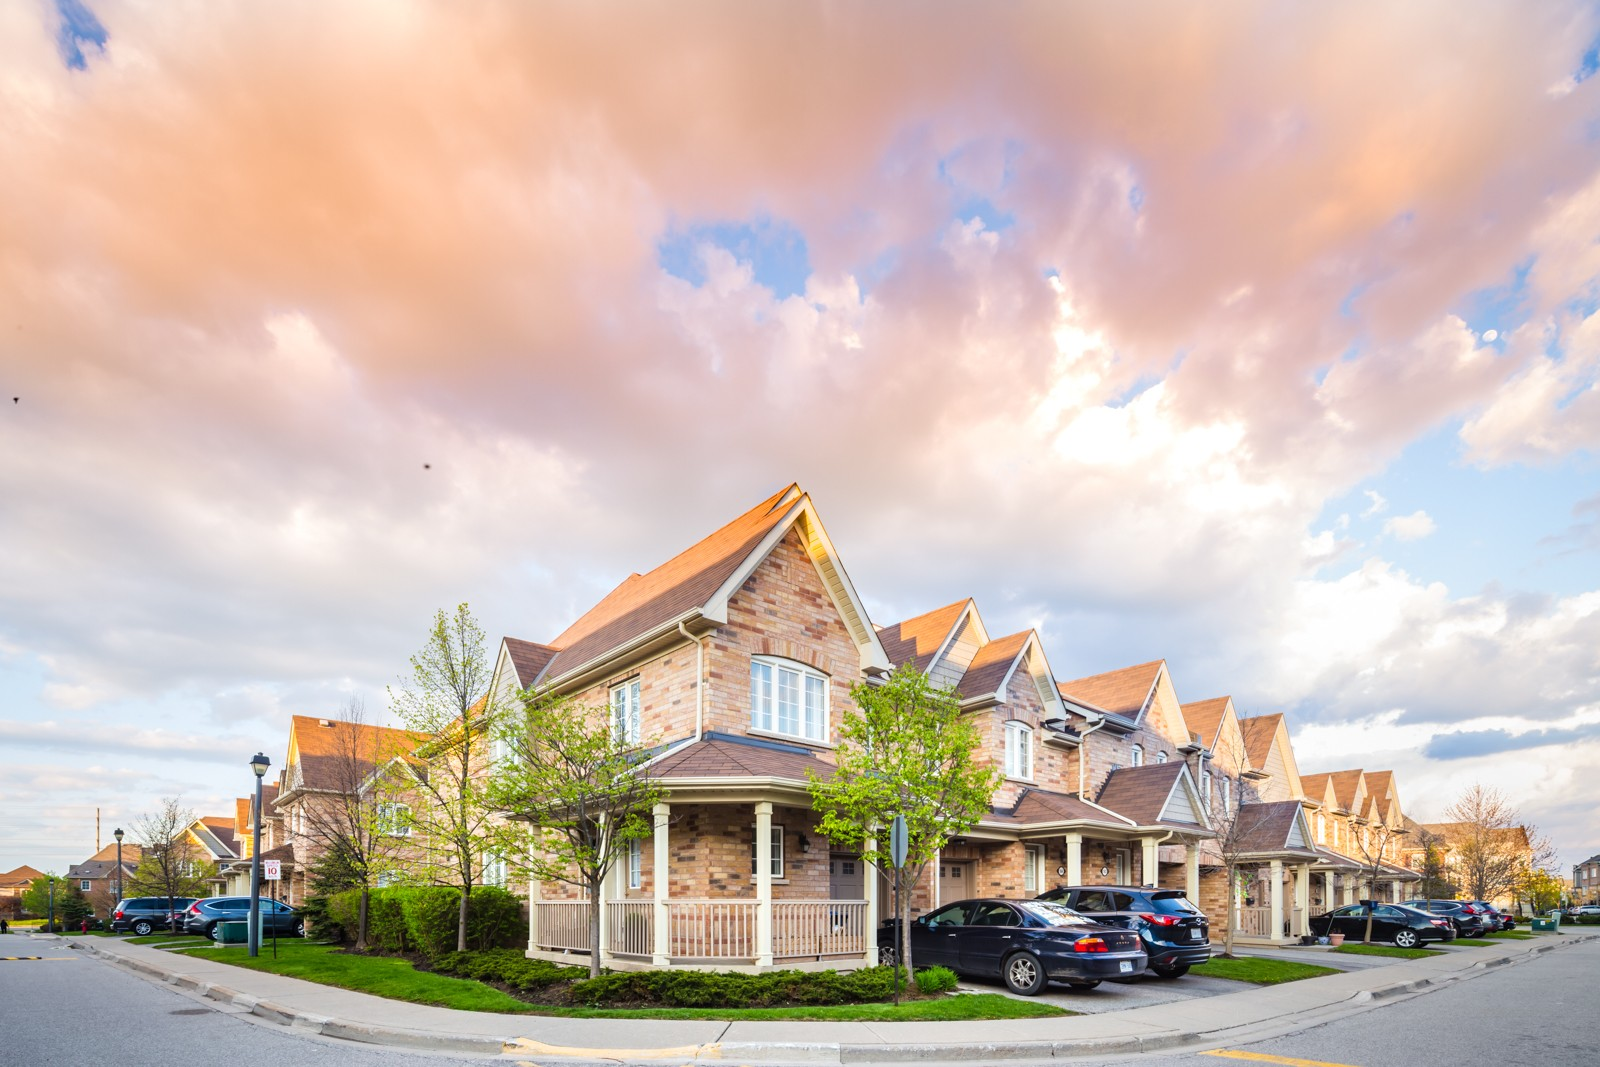 5255 Palmetto Pl Townhouses at 5255 Palmetto Pl, Mississauga 1